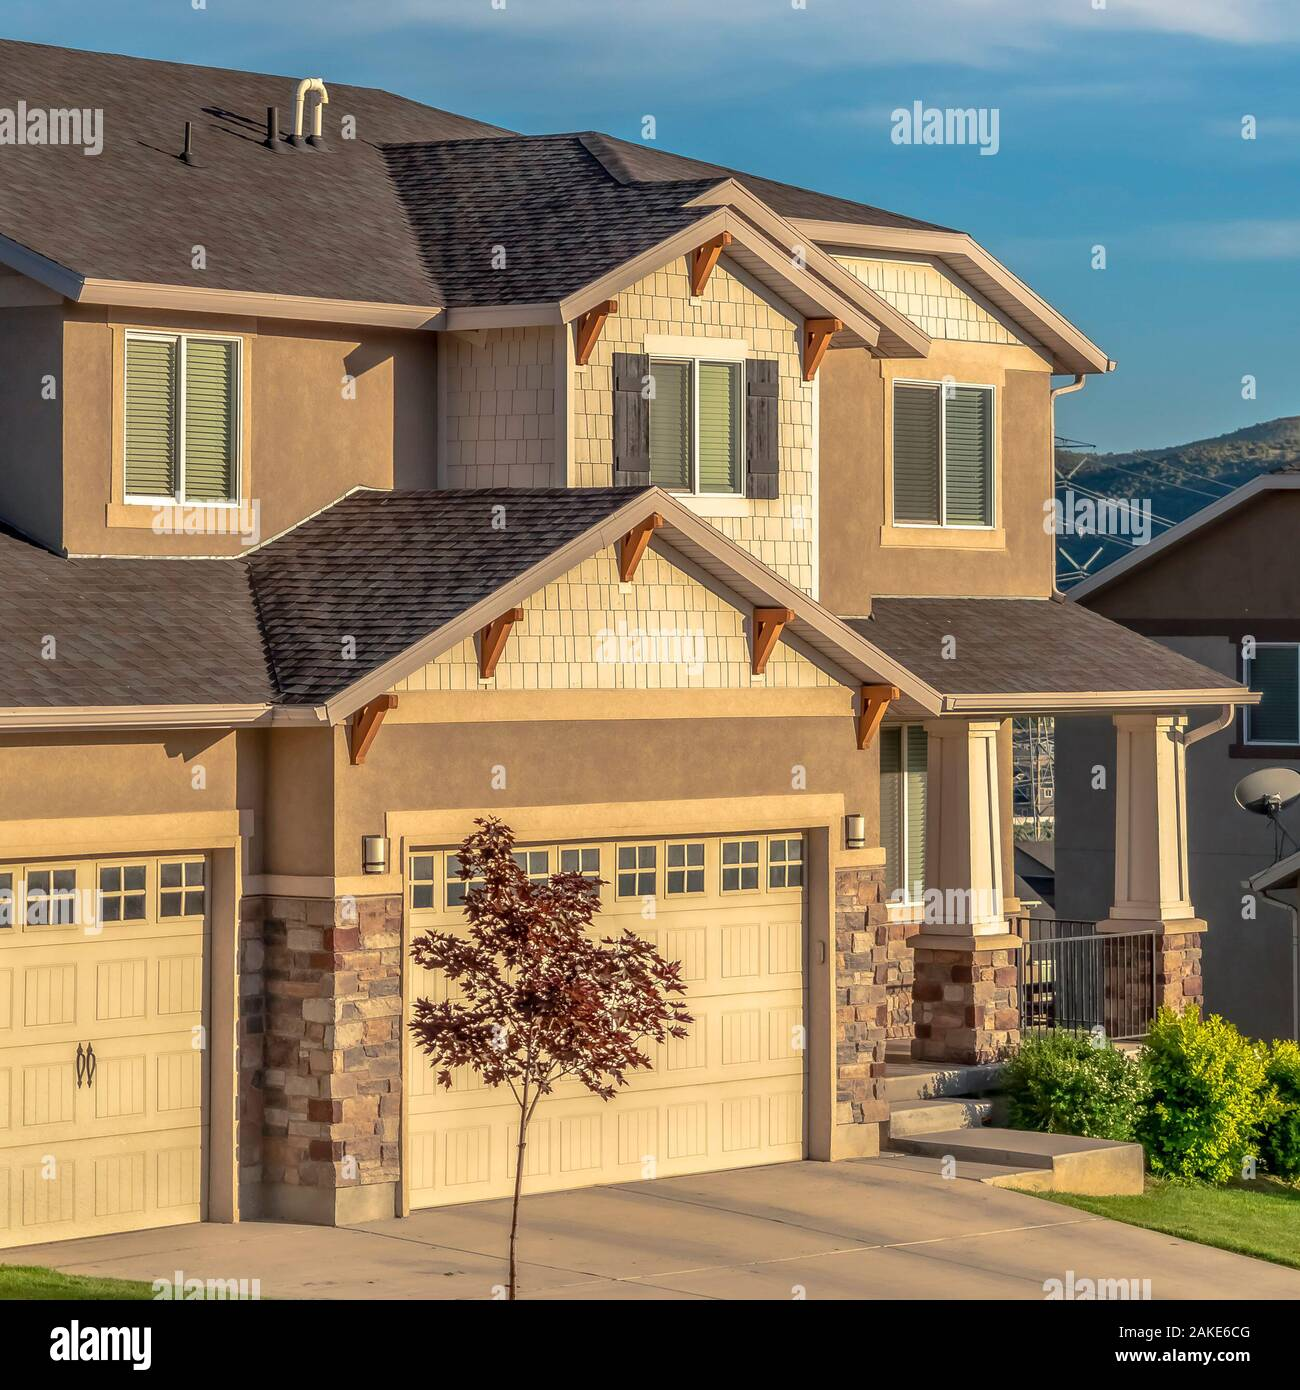 Square Frame Beautiful House Exterior With Concrete And Stone Brick Wall Against Blue Sky Stock Photo Alamy